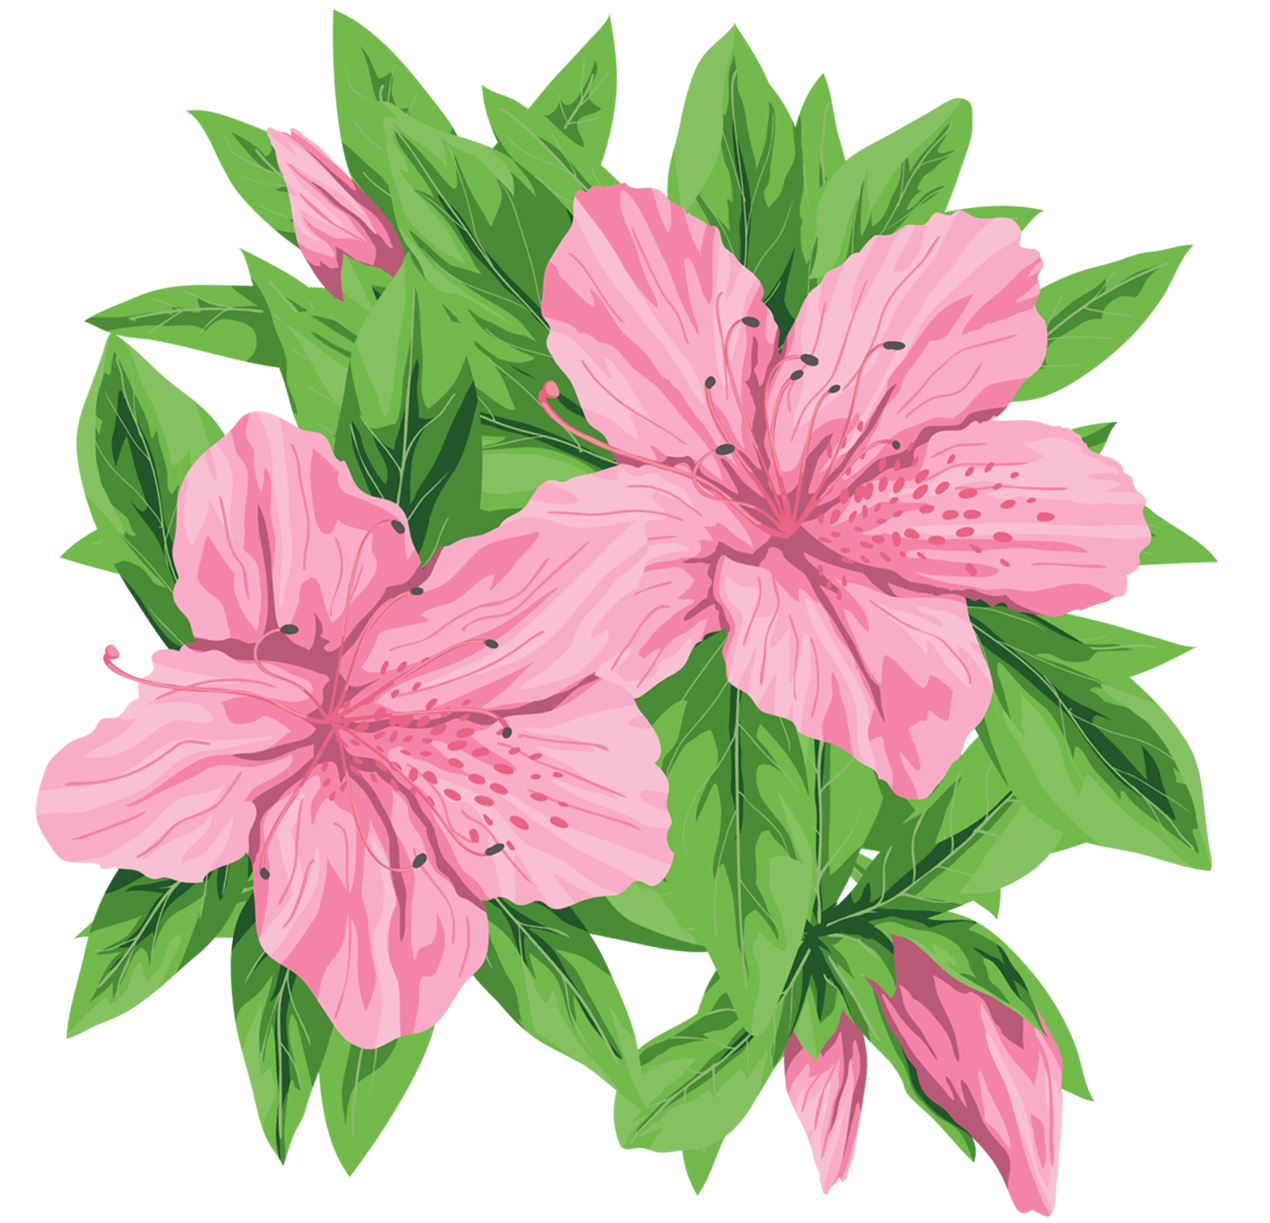 1270x1223 Pink Flowers Png Clip Art Imageu200b Gallery Yopriceville